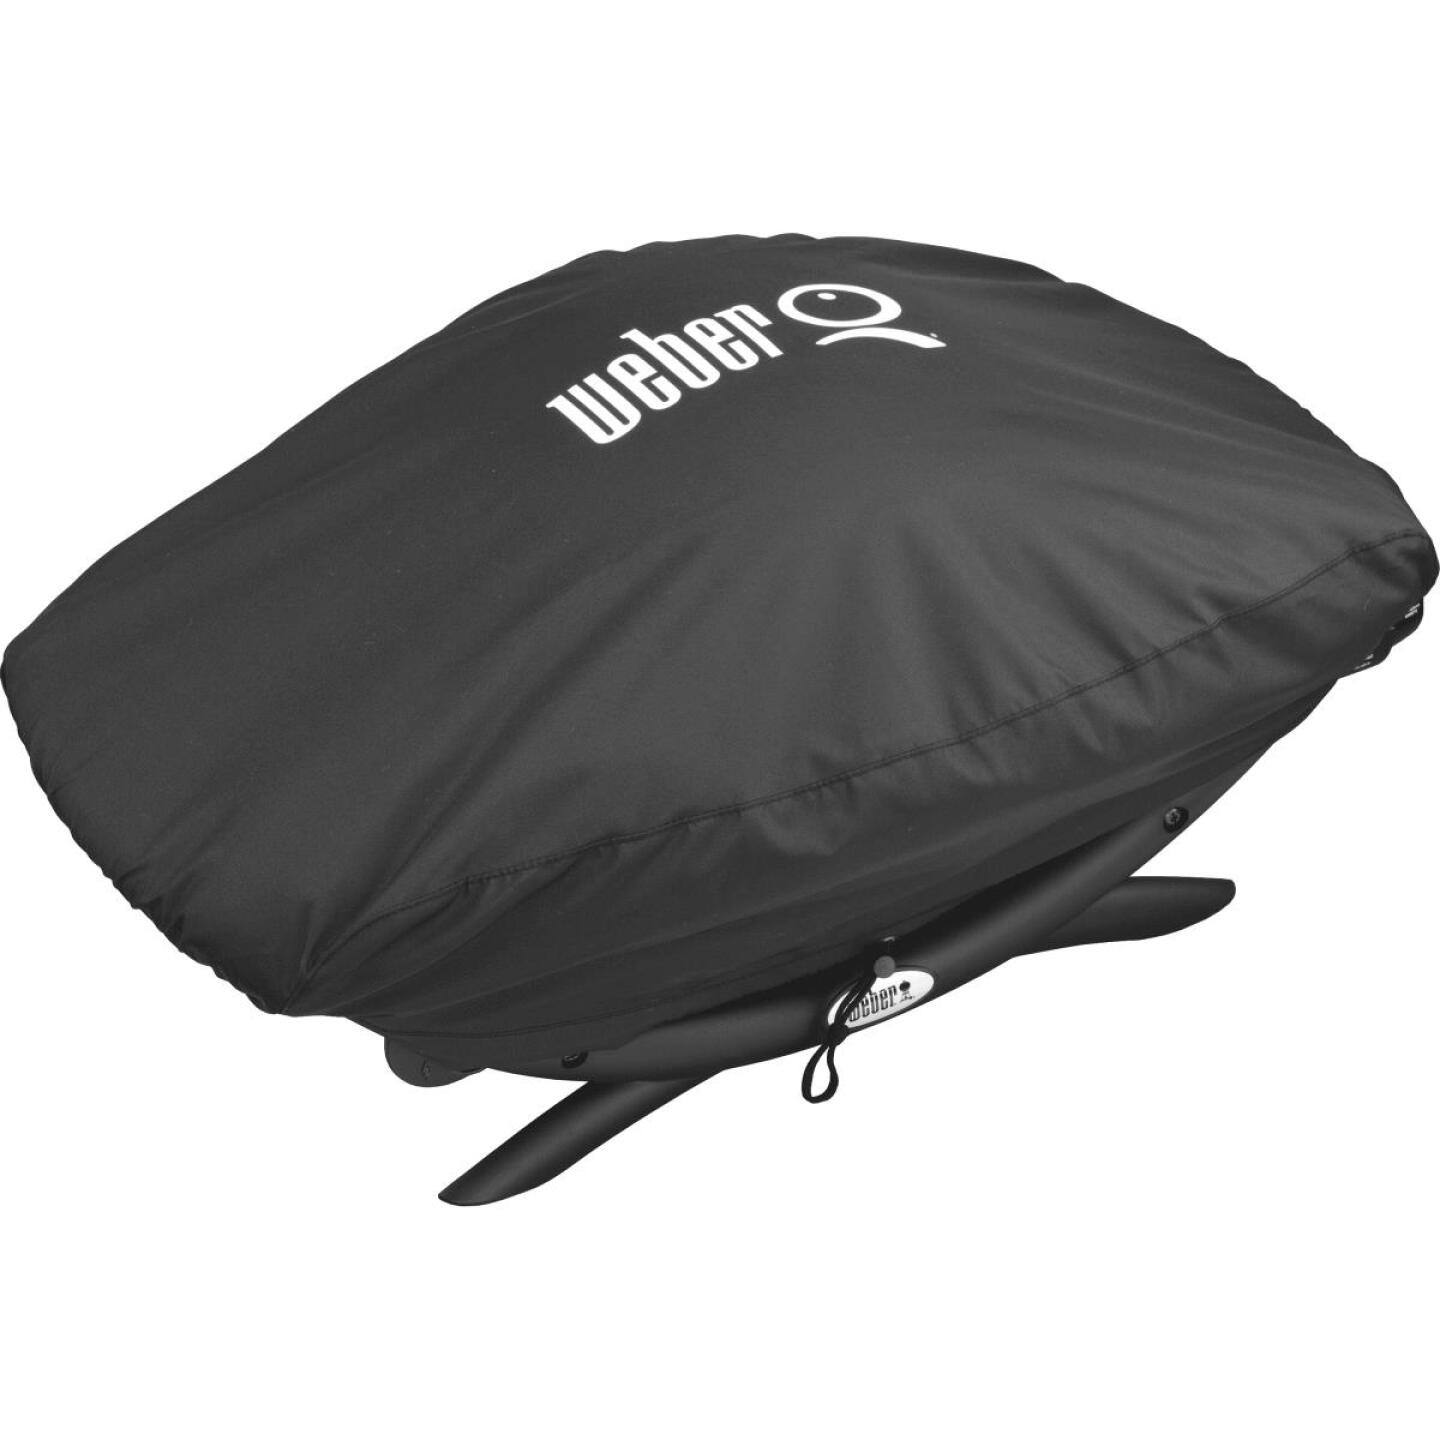 Weber Q 200/2000 21 In. Black Vinyl Grill Cover Image 1